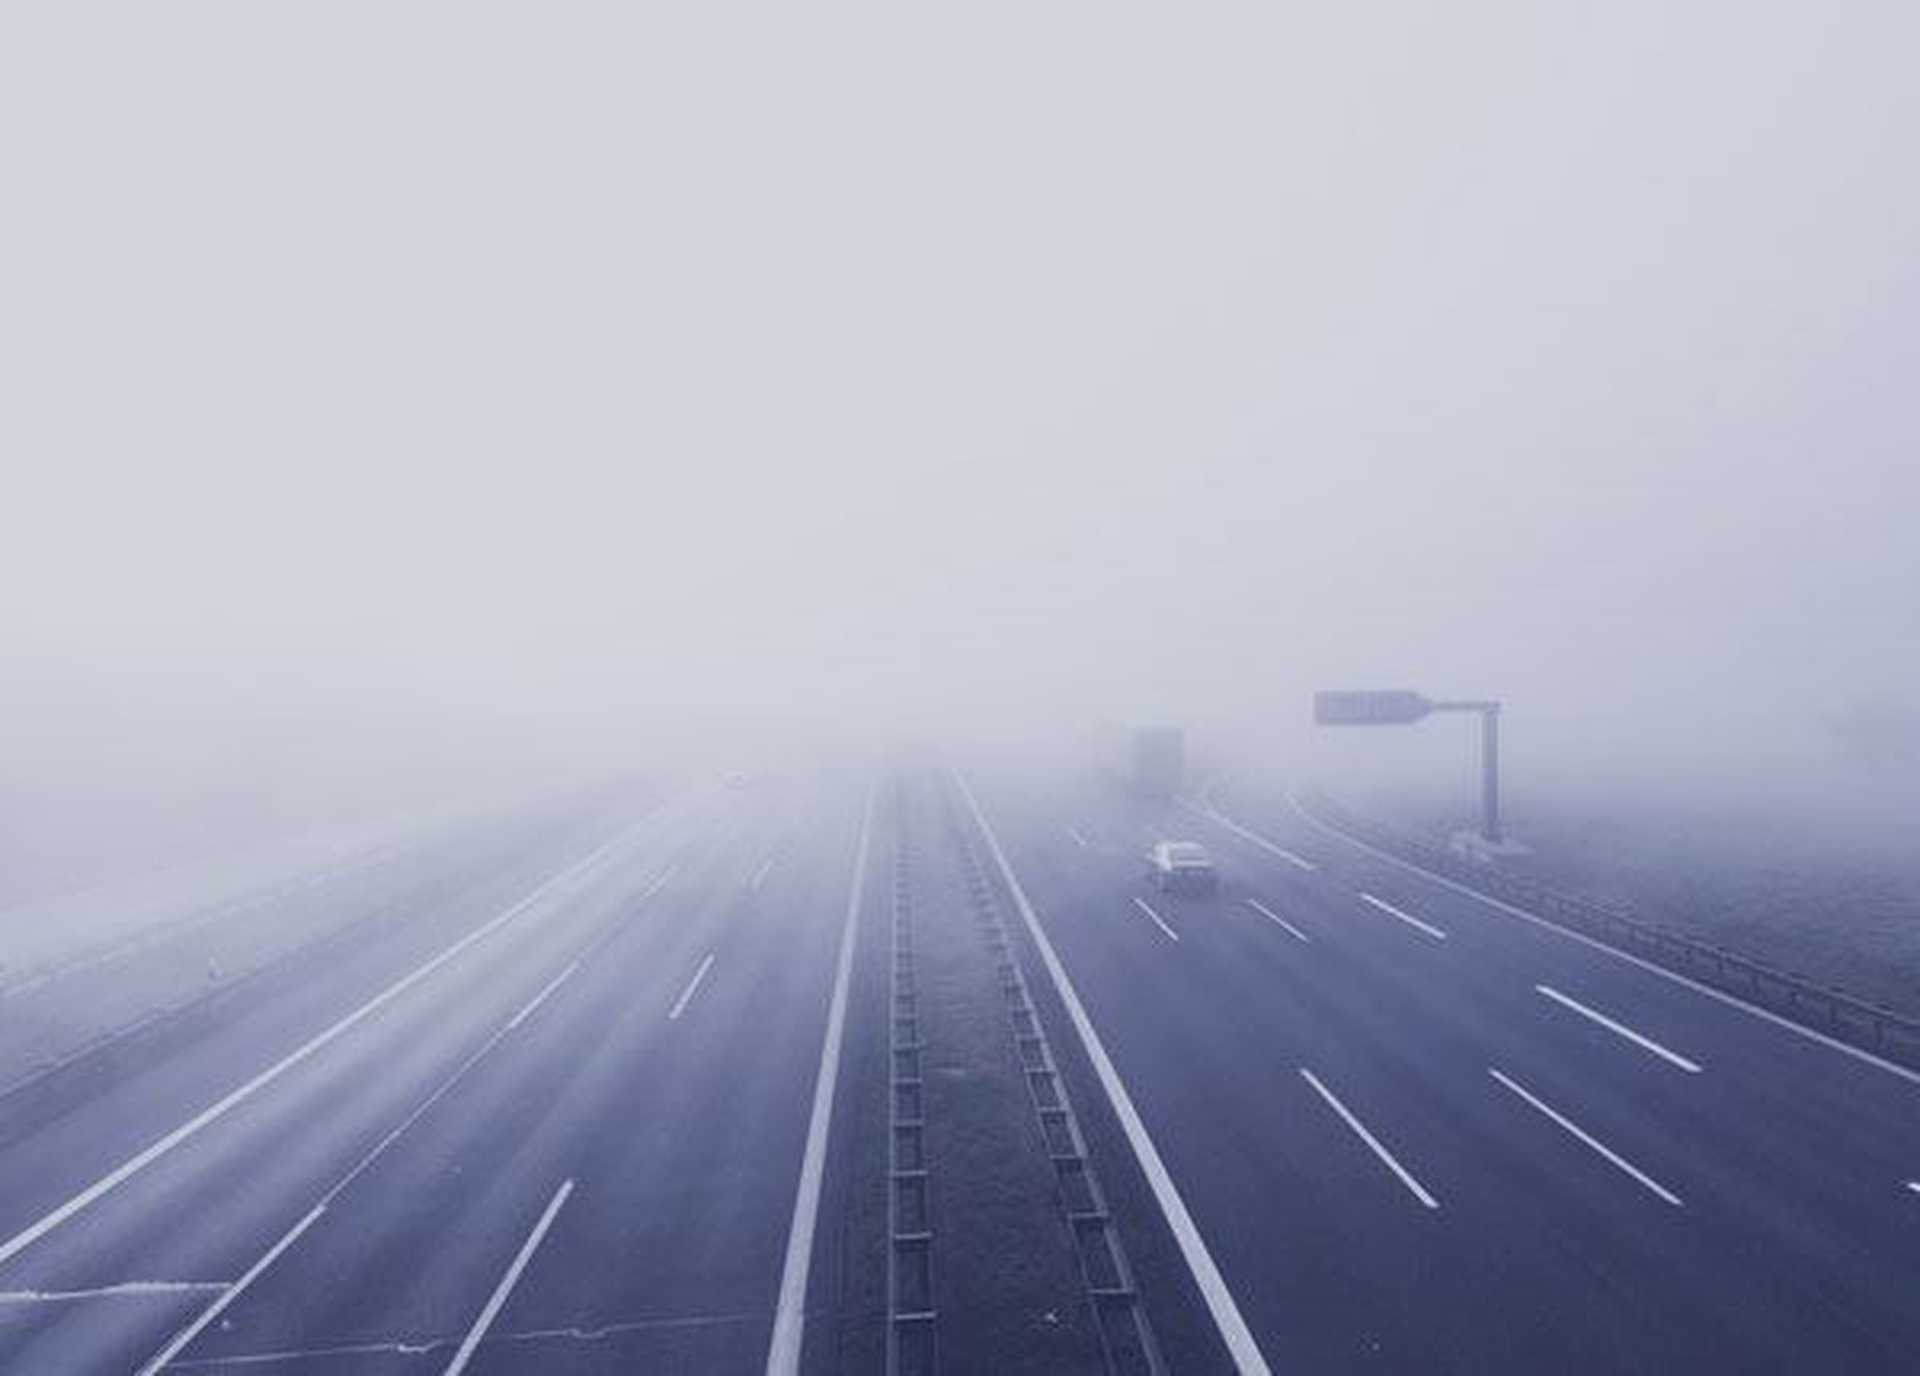 Driving in Foggy Conditions